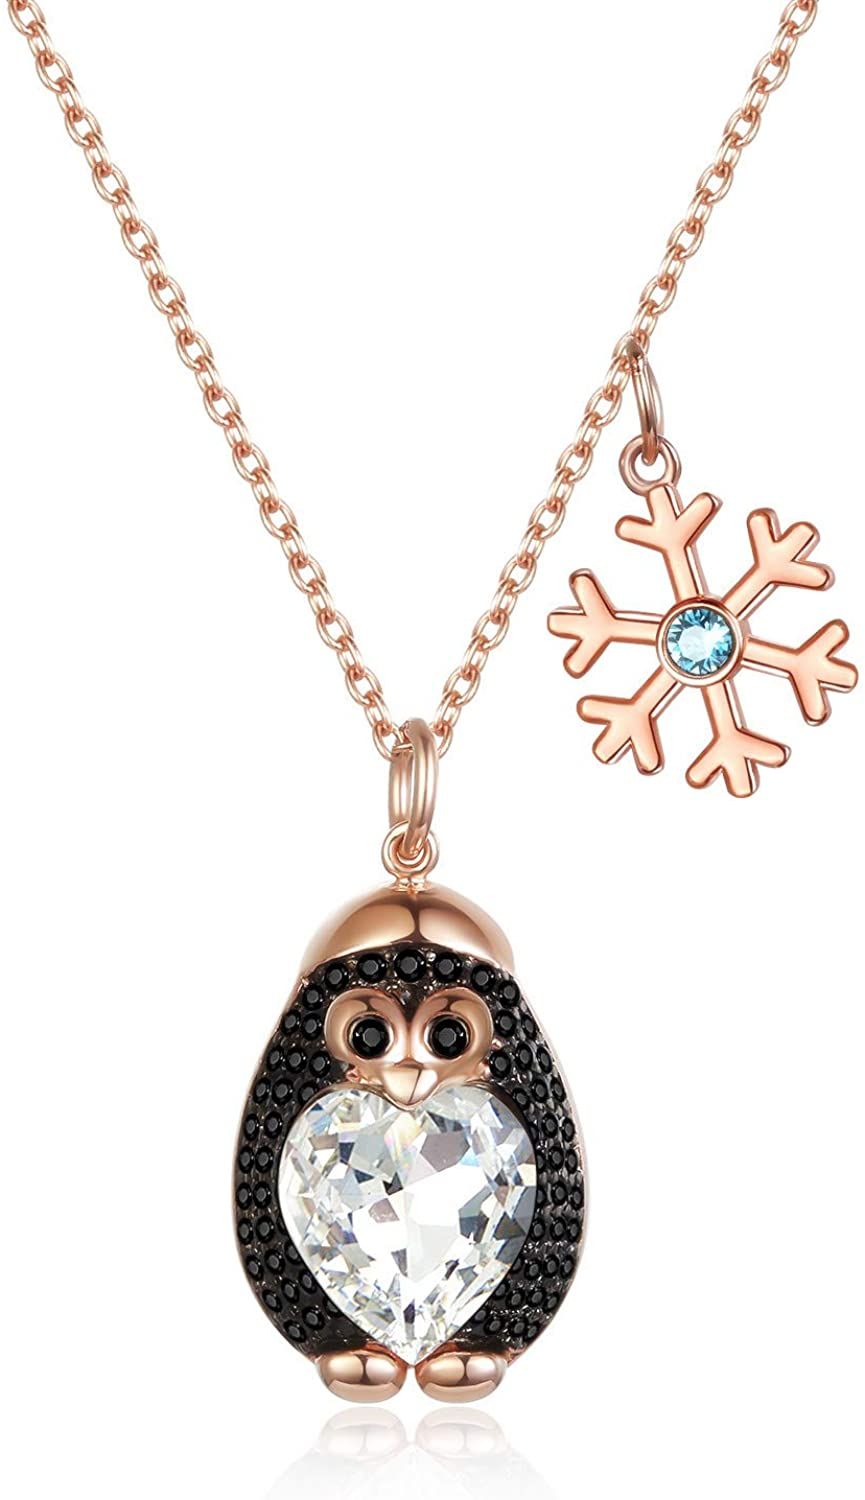 AOBOCO Sterling Silver Penguin Pendant Jewelry Gift for Her, Girfriend Birthday Valentines Day Gift, Rose Gold Plated